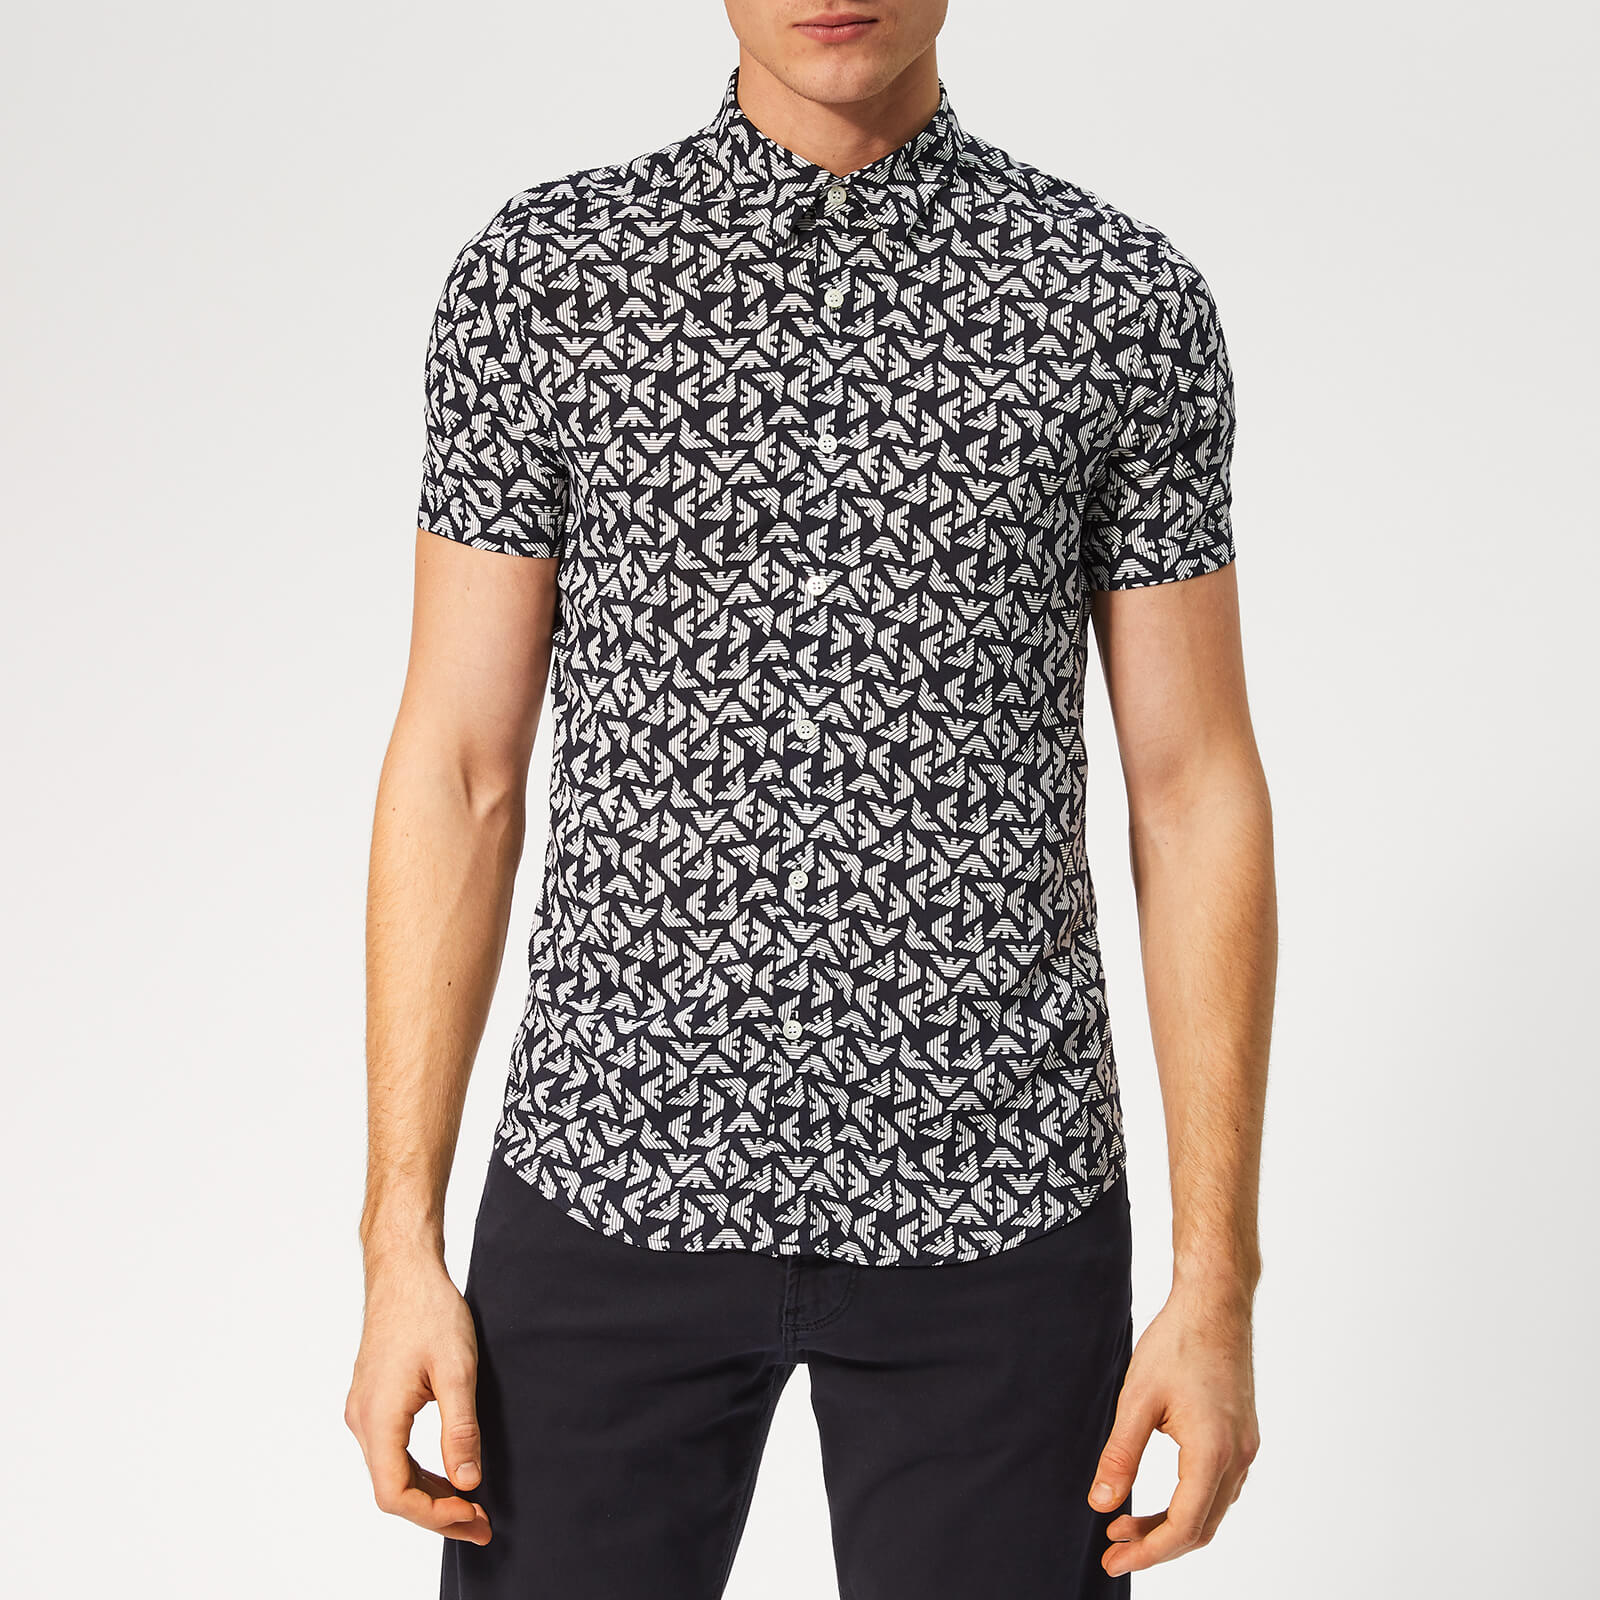 ccf361a6 Emporio Armani Men's All Over Print Short Sleeve Shirt - Fant Blue - Free  UK Delivery over £50